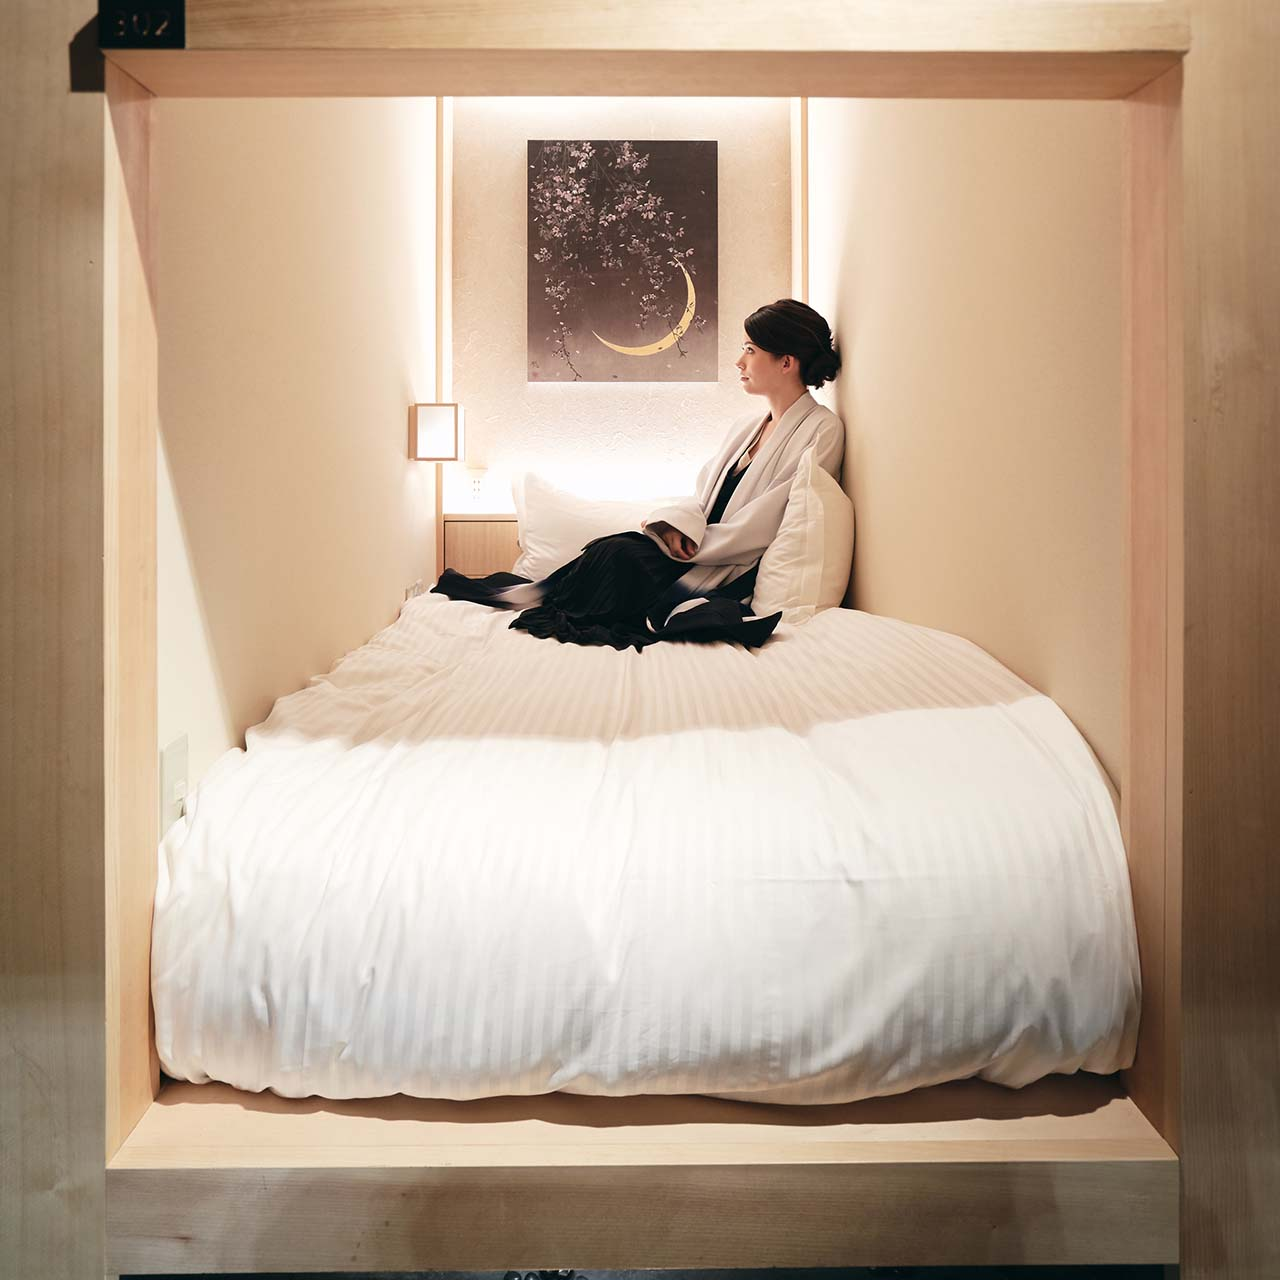 Luxurious Zen Resort: Luxury Capsule Hotels To Try On Your Next Visit To Japan